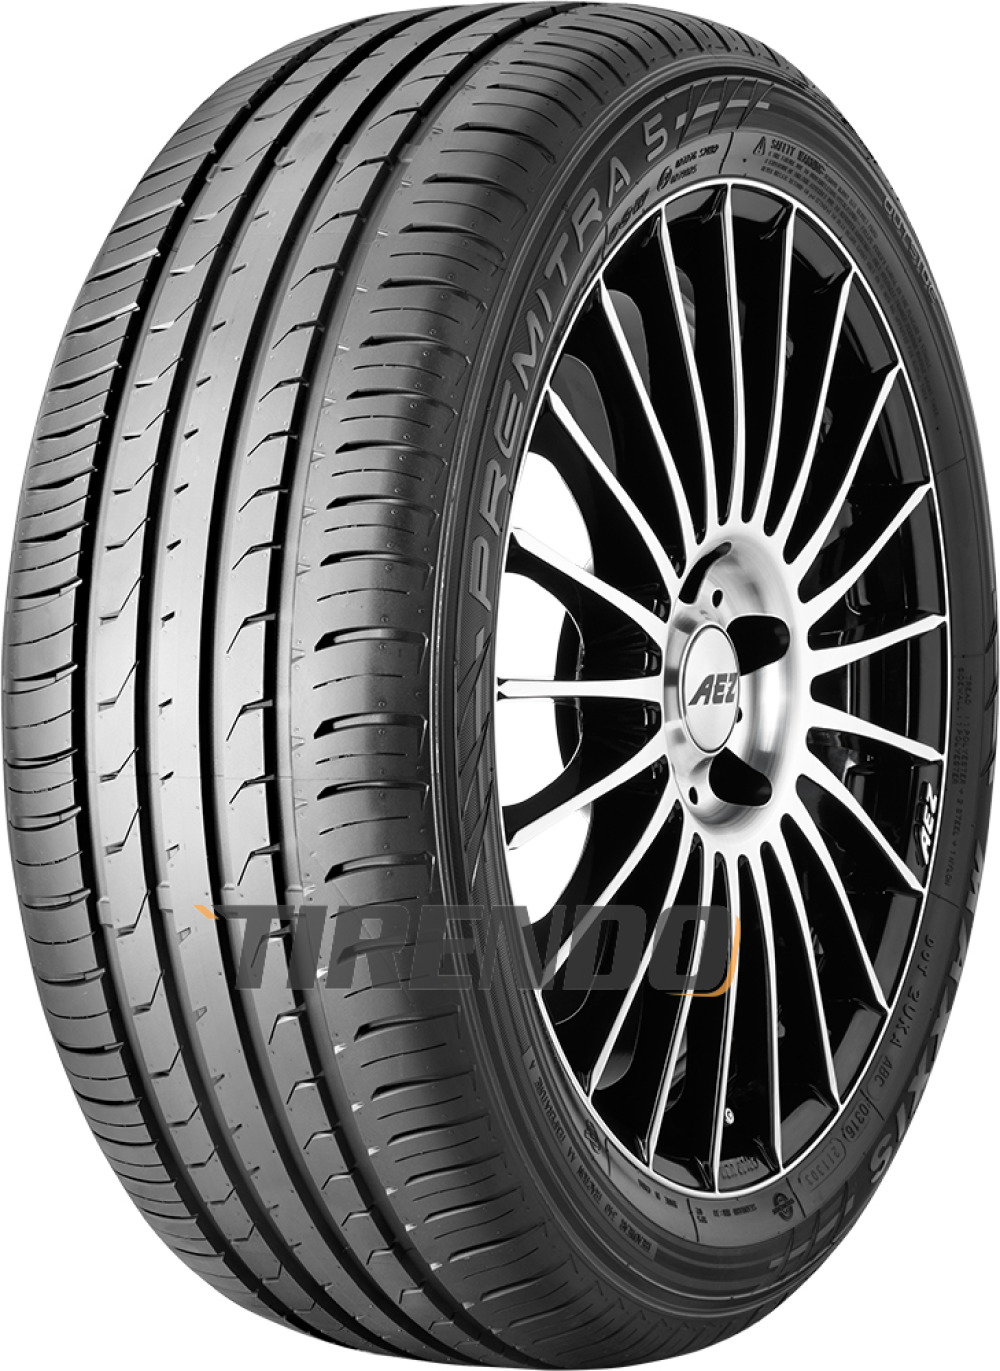 Maxxis Premitra 5 ( 195/65 R15 91H )